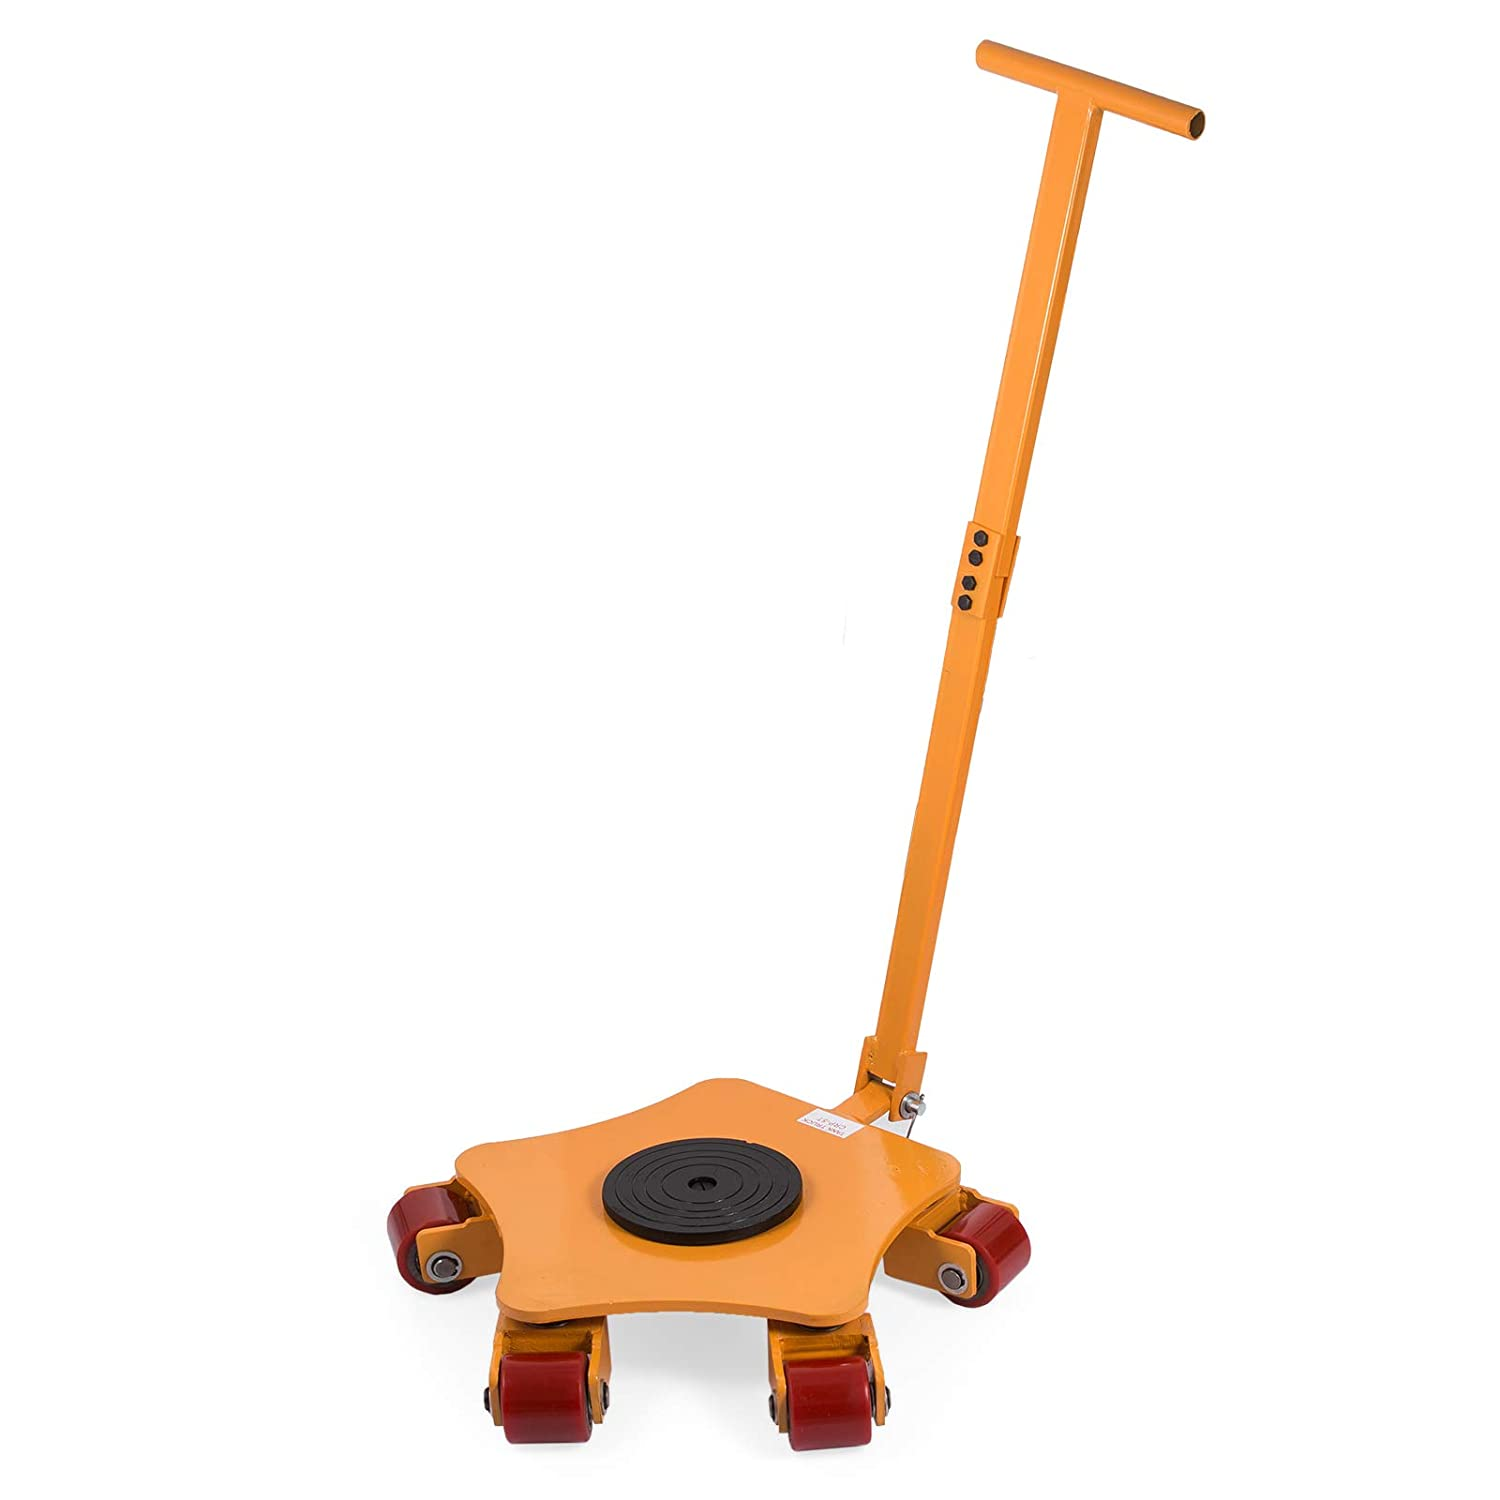 OrangeA Industrial Machinery Mover 13200-lb Machinery Skate w/ Steel Rollers Cap 360 Degree Rotation T&HI-B077JNYFYH